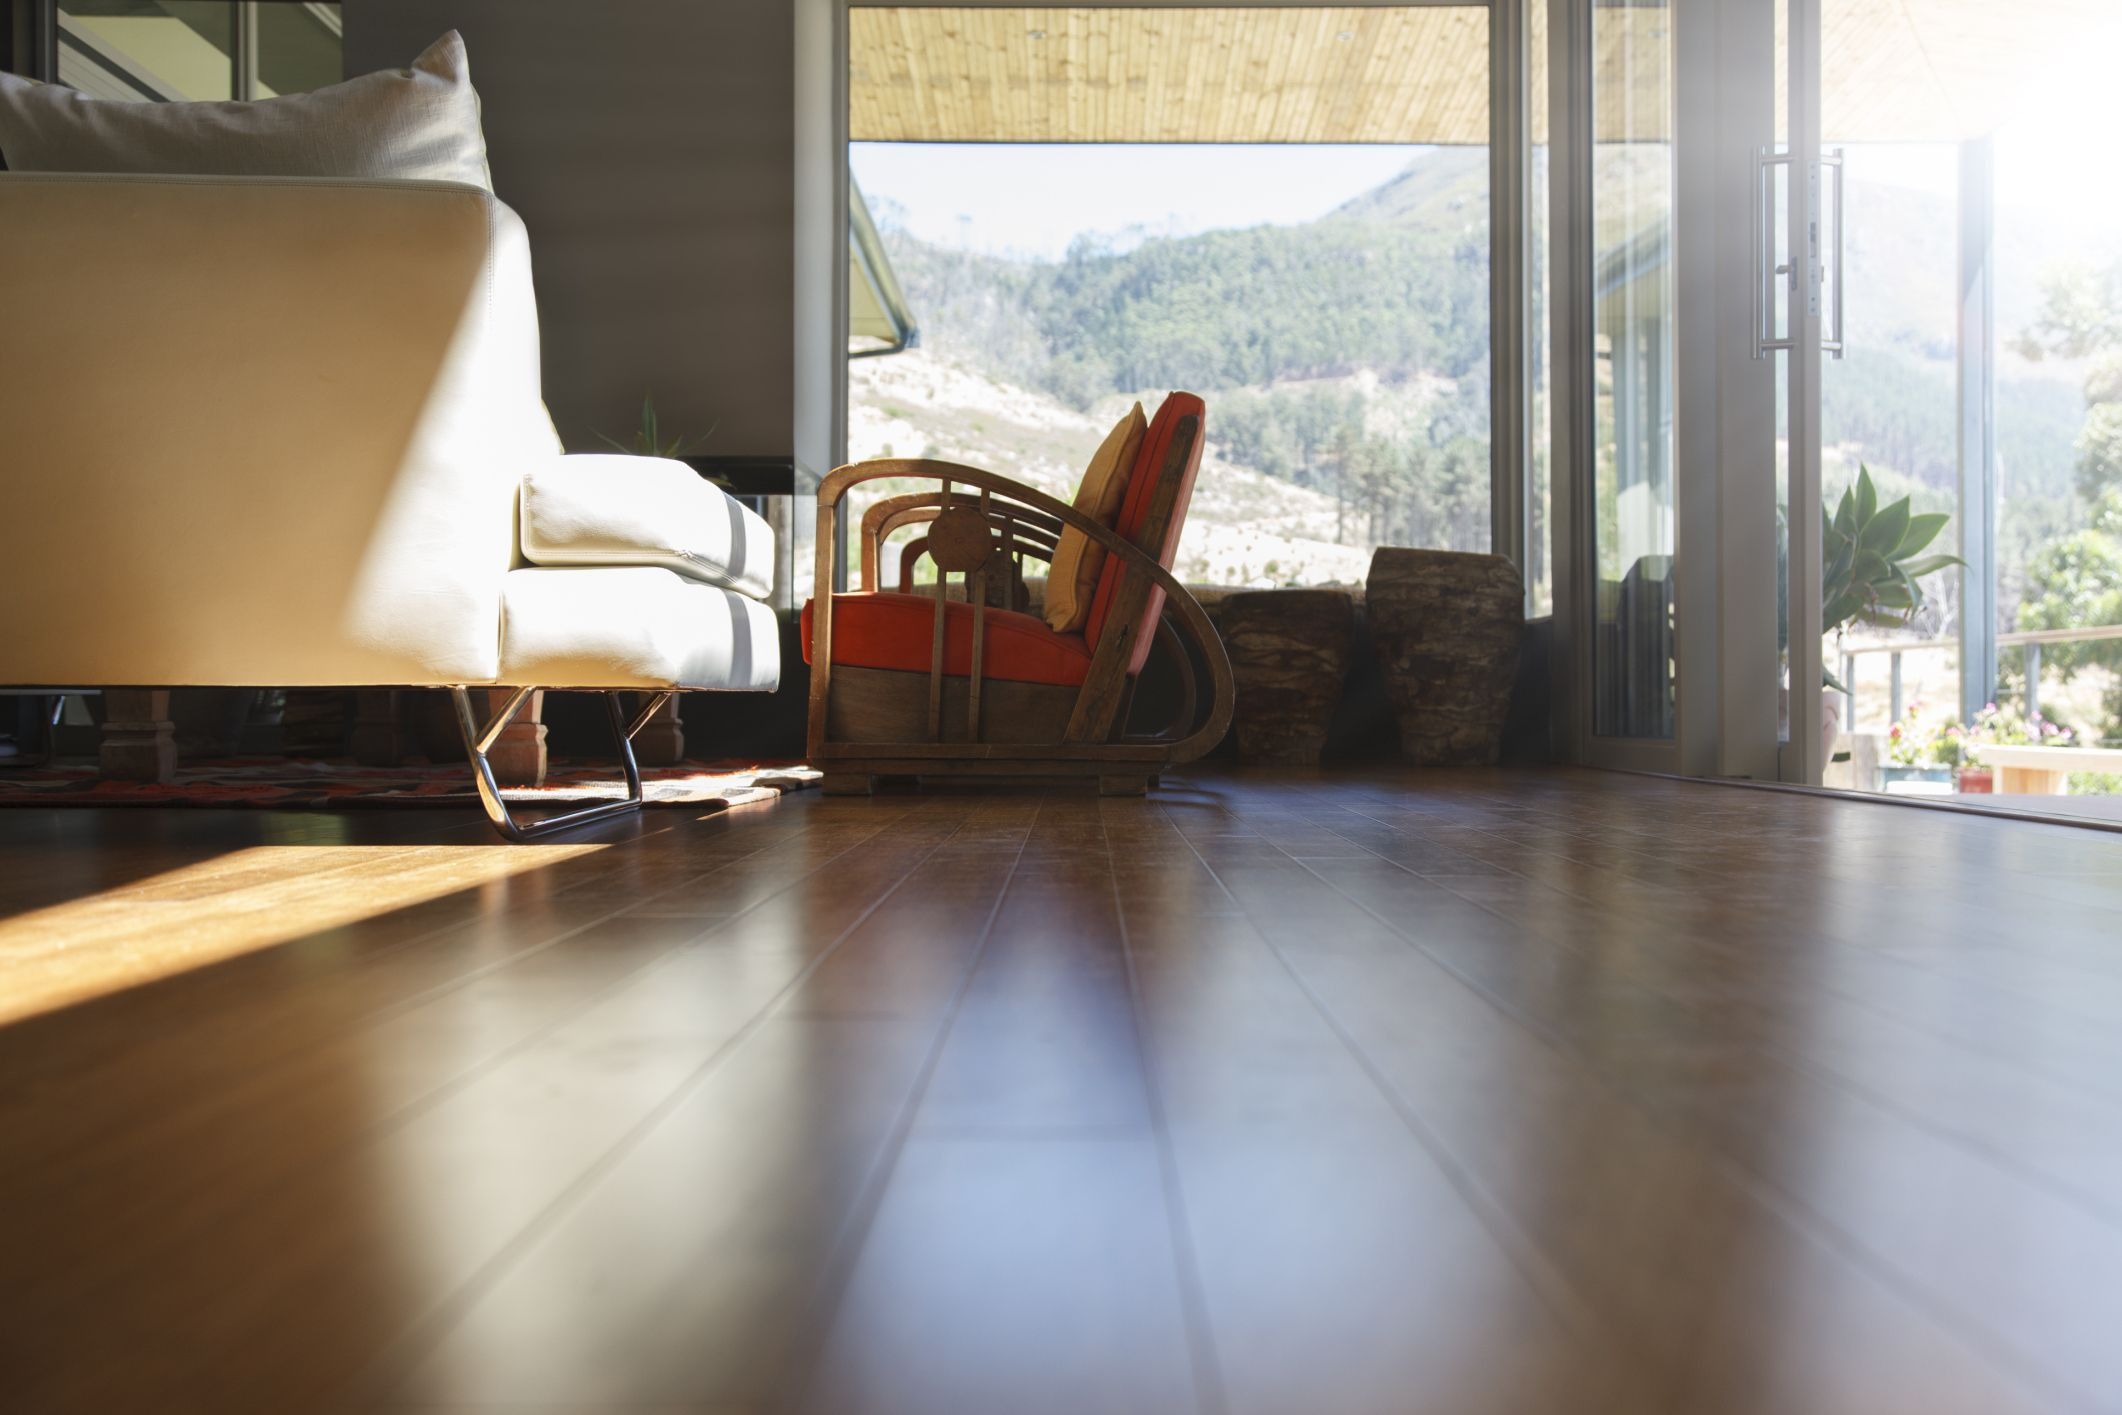 installing solid hardwood floors of floating floors basics types and pros and cons with regard to exotic hardwood flooring 525439899 56a49d3a3df78cf77283453d